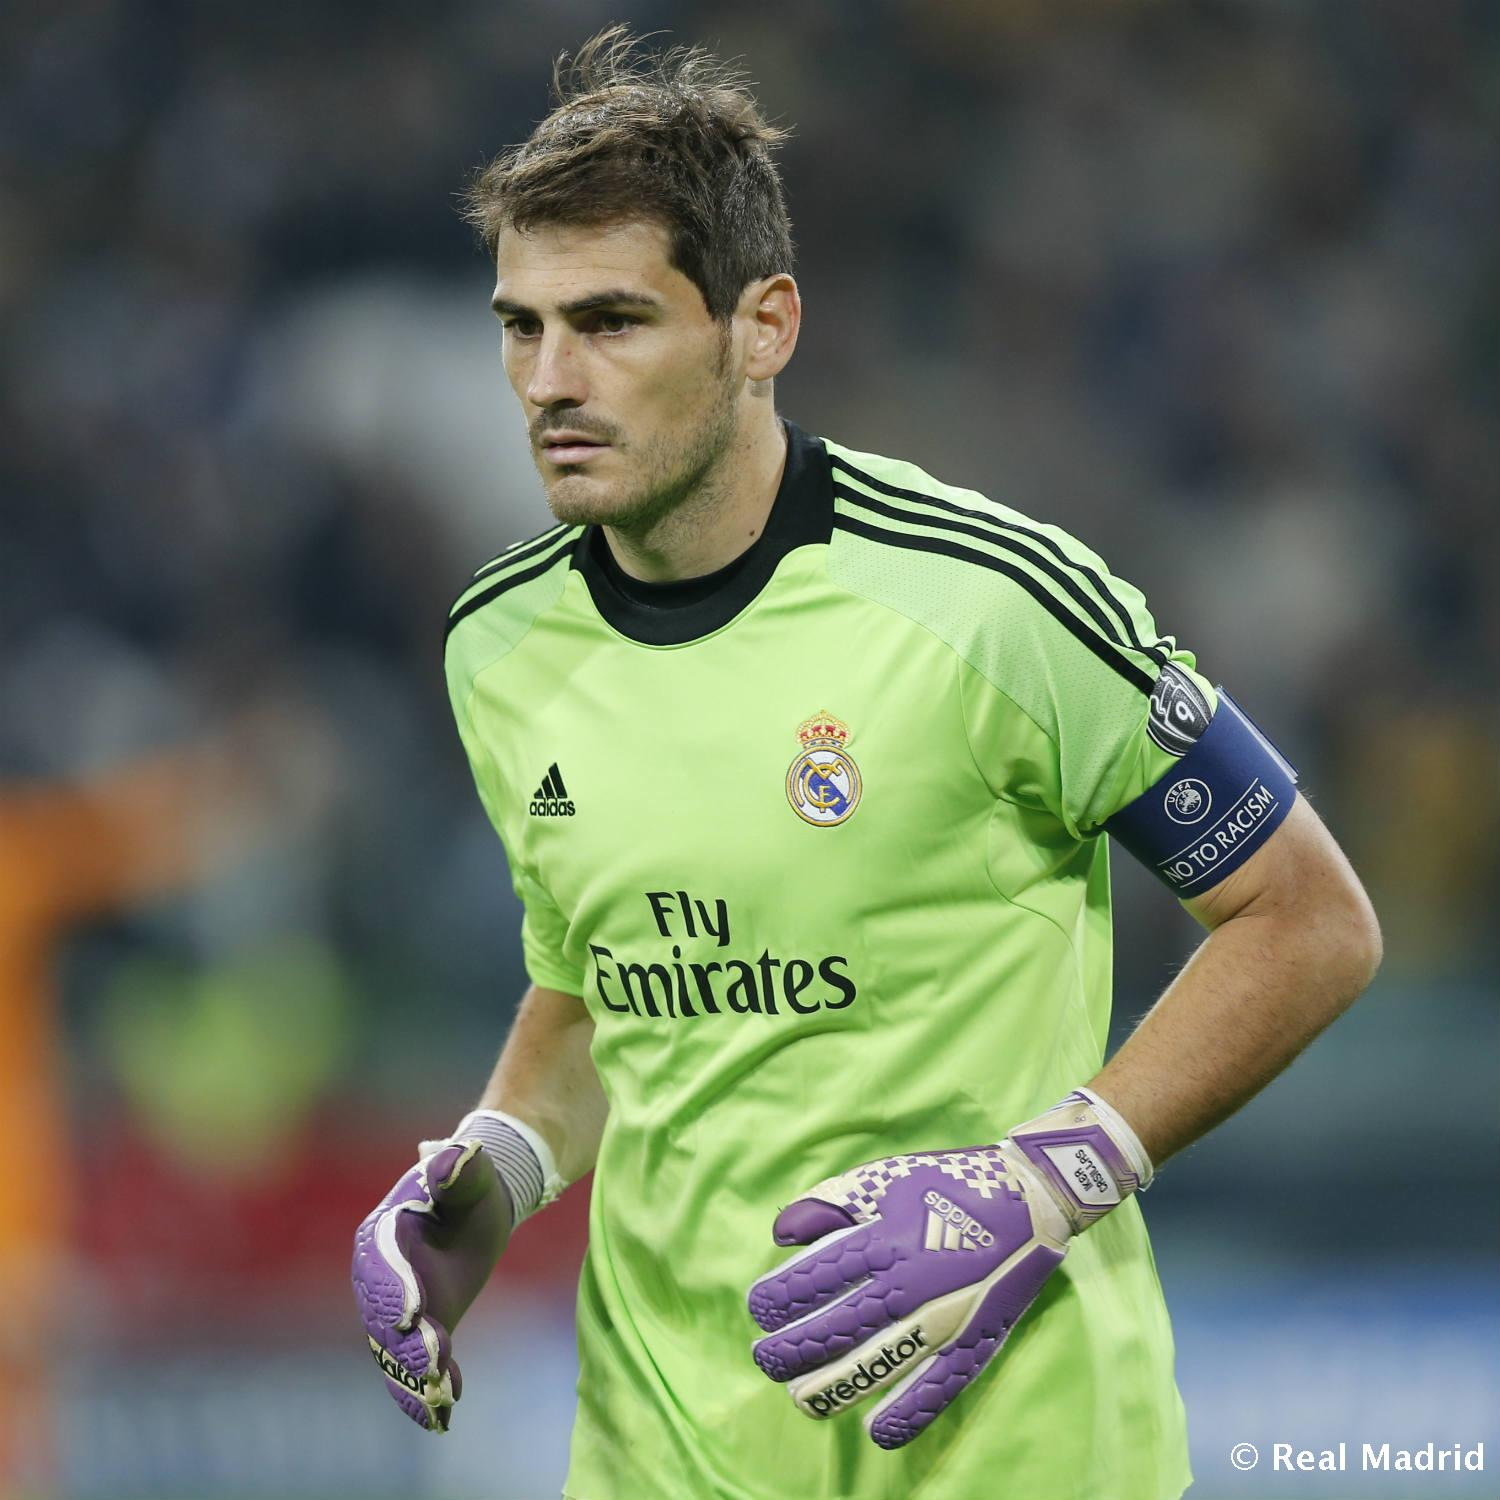 Real Madrid - Iker Casillas - 27-01-2014